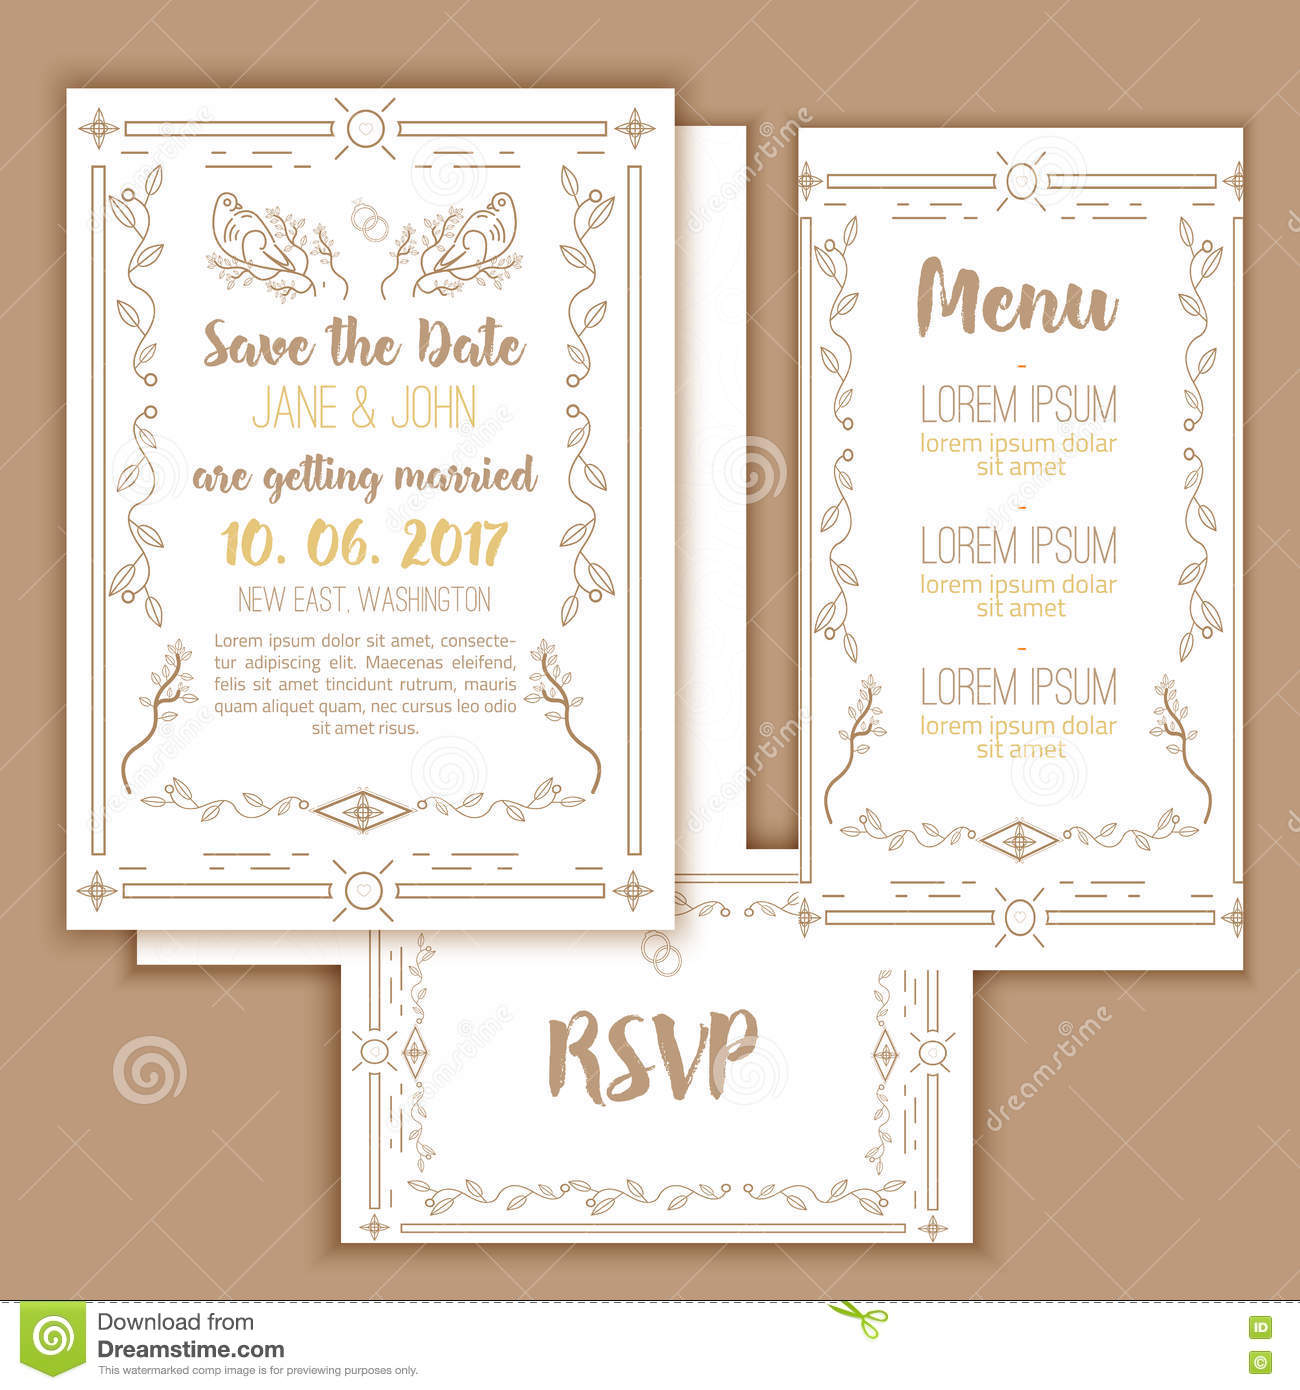 image about Printable Save the Date Cards titled Printable Conserve The Day With Geometric Gold Body In just Linear